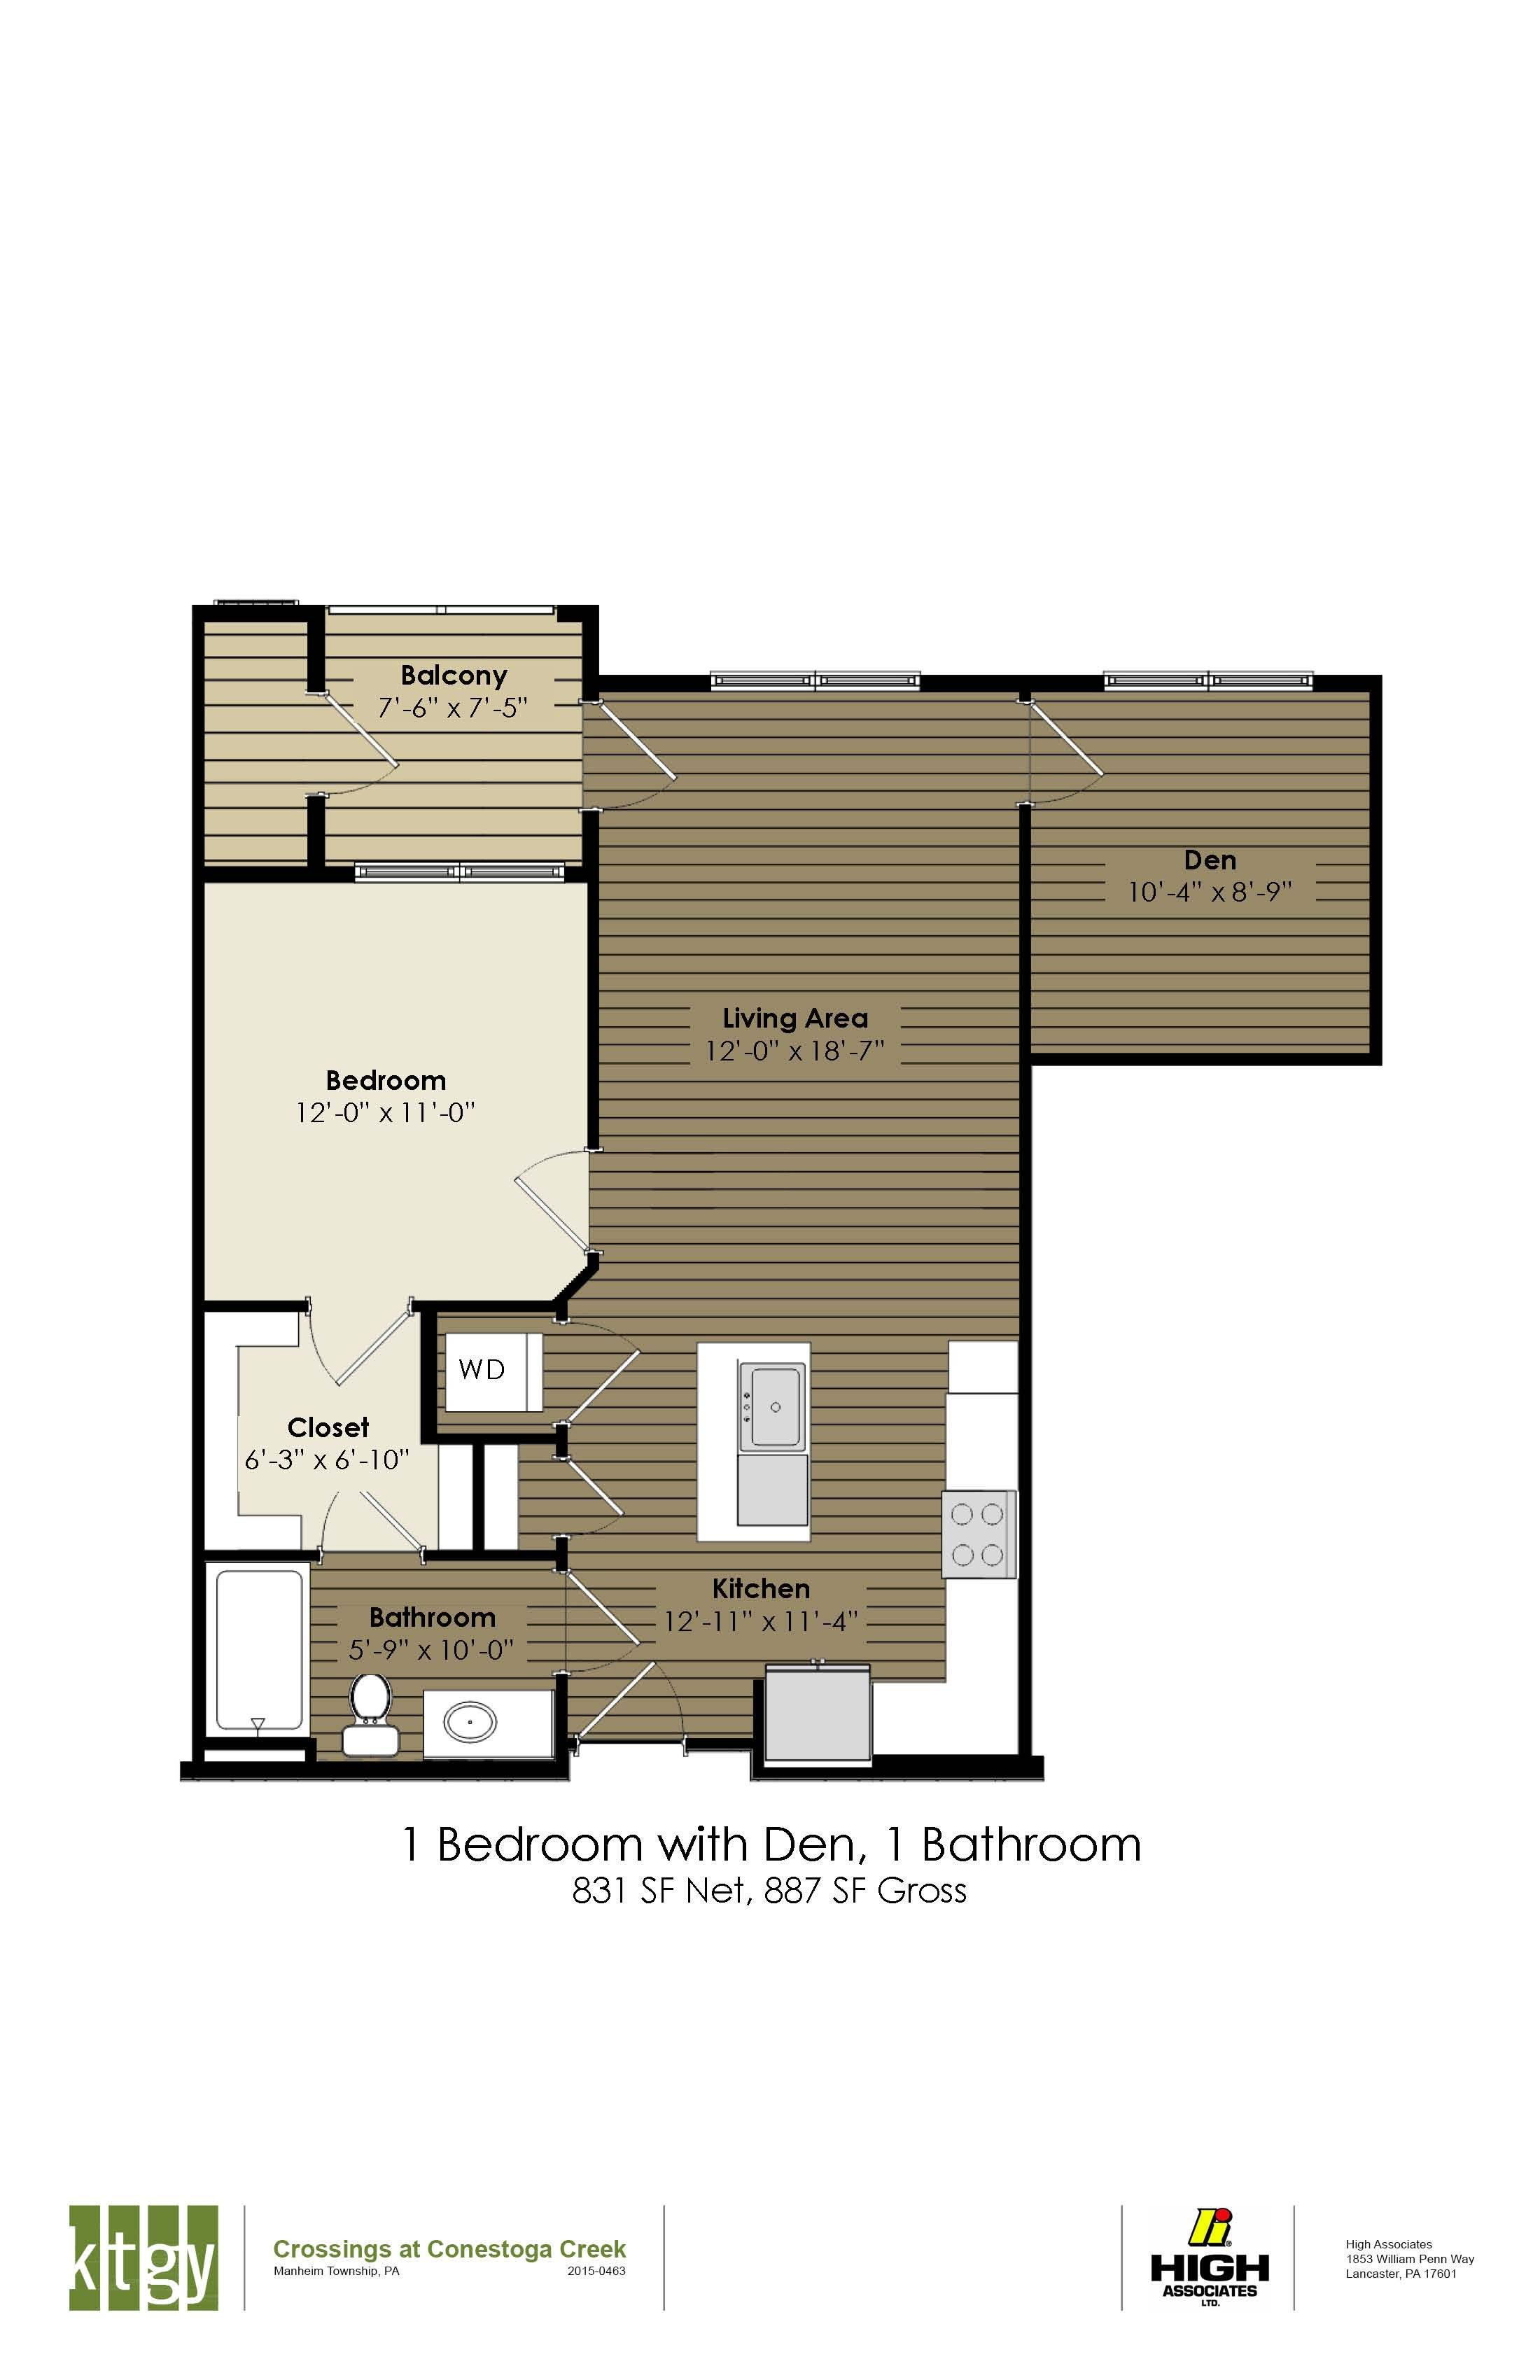 1 Bedroom With Den - Watt & Shand